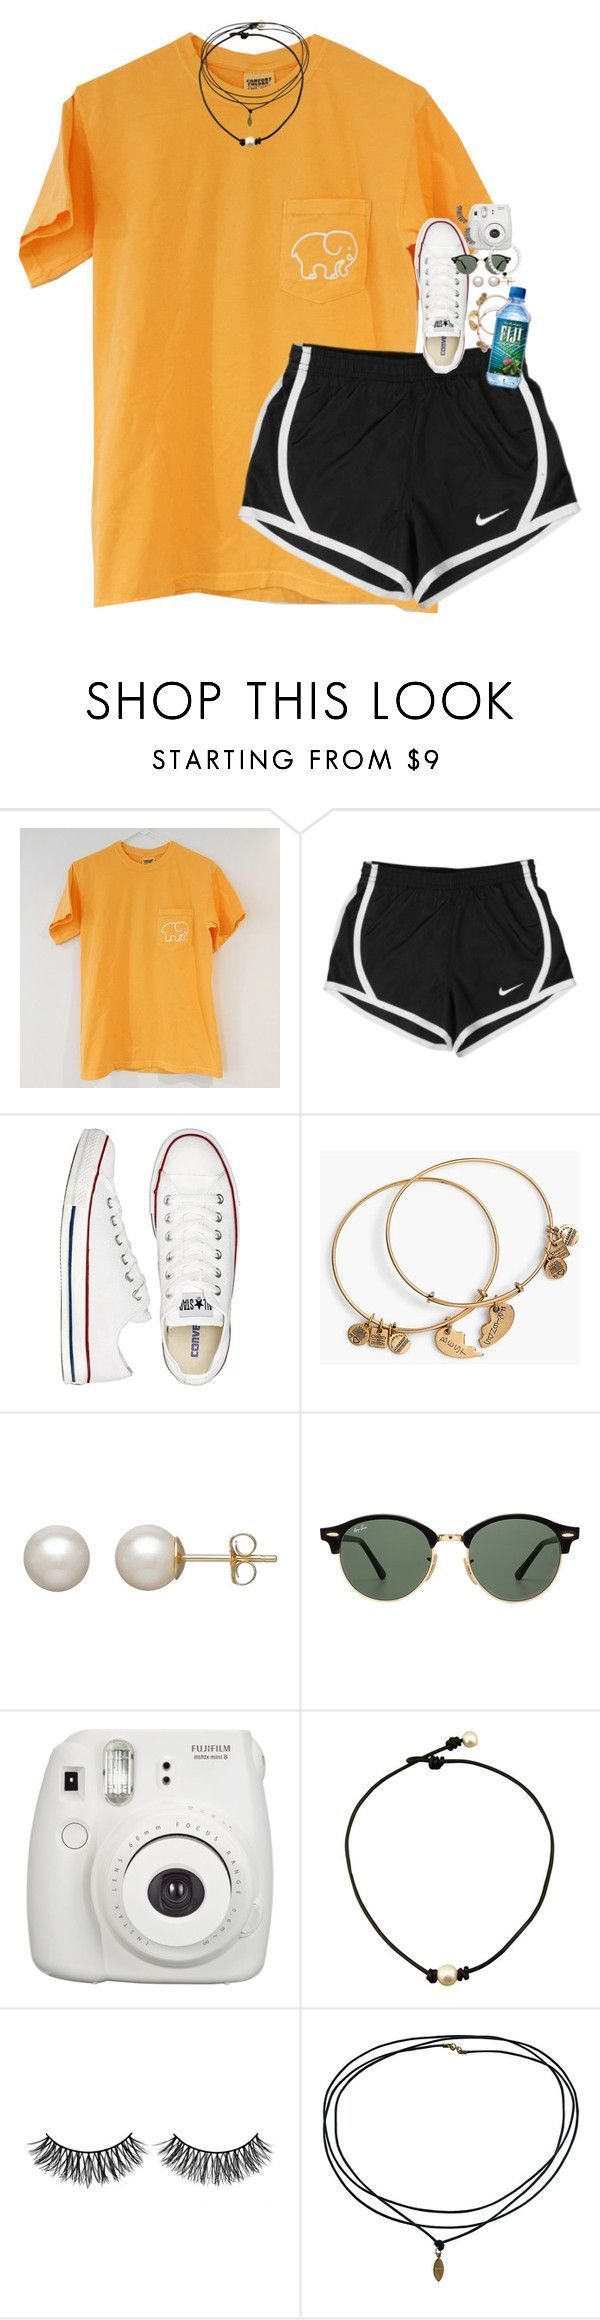 """""""Customized Set!!1111!!!"""" by classynsouthern ❤ liked on Polyvore featuring NIKE, Converse, Alex and Ani, Honora, Ray-Ban, Fujifilm and Rimini"""